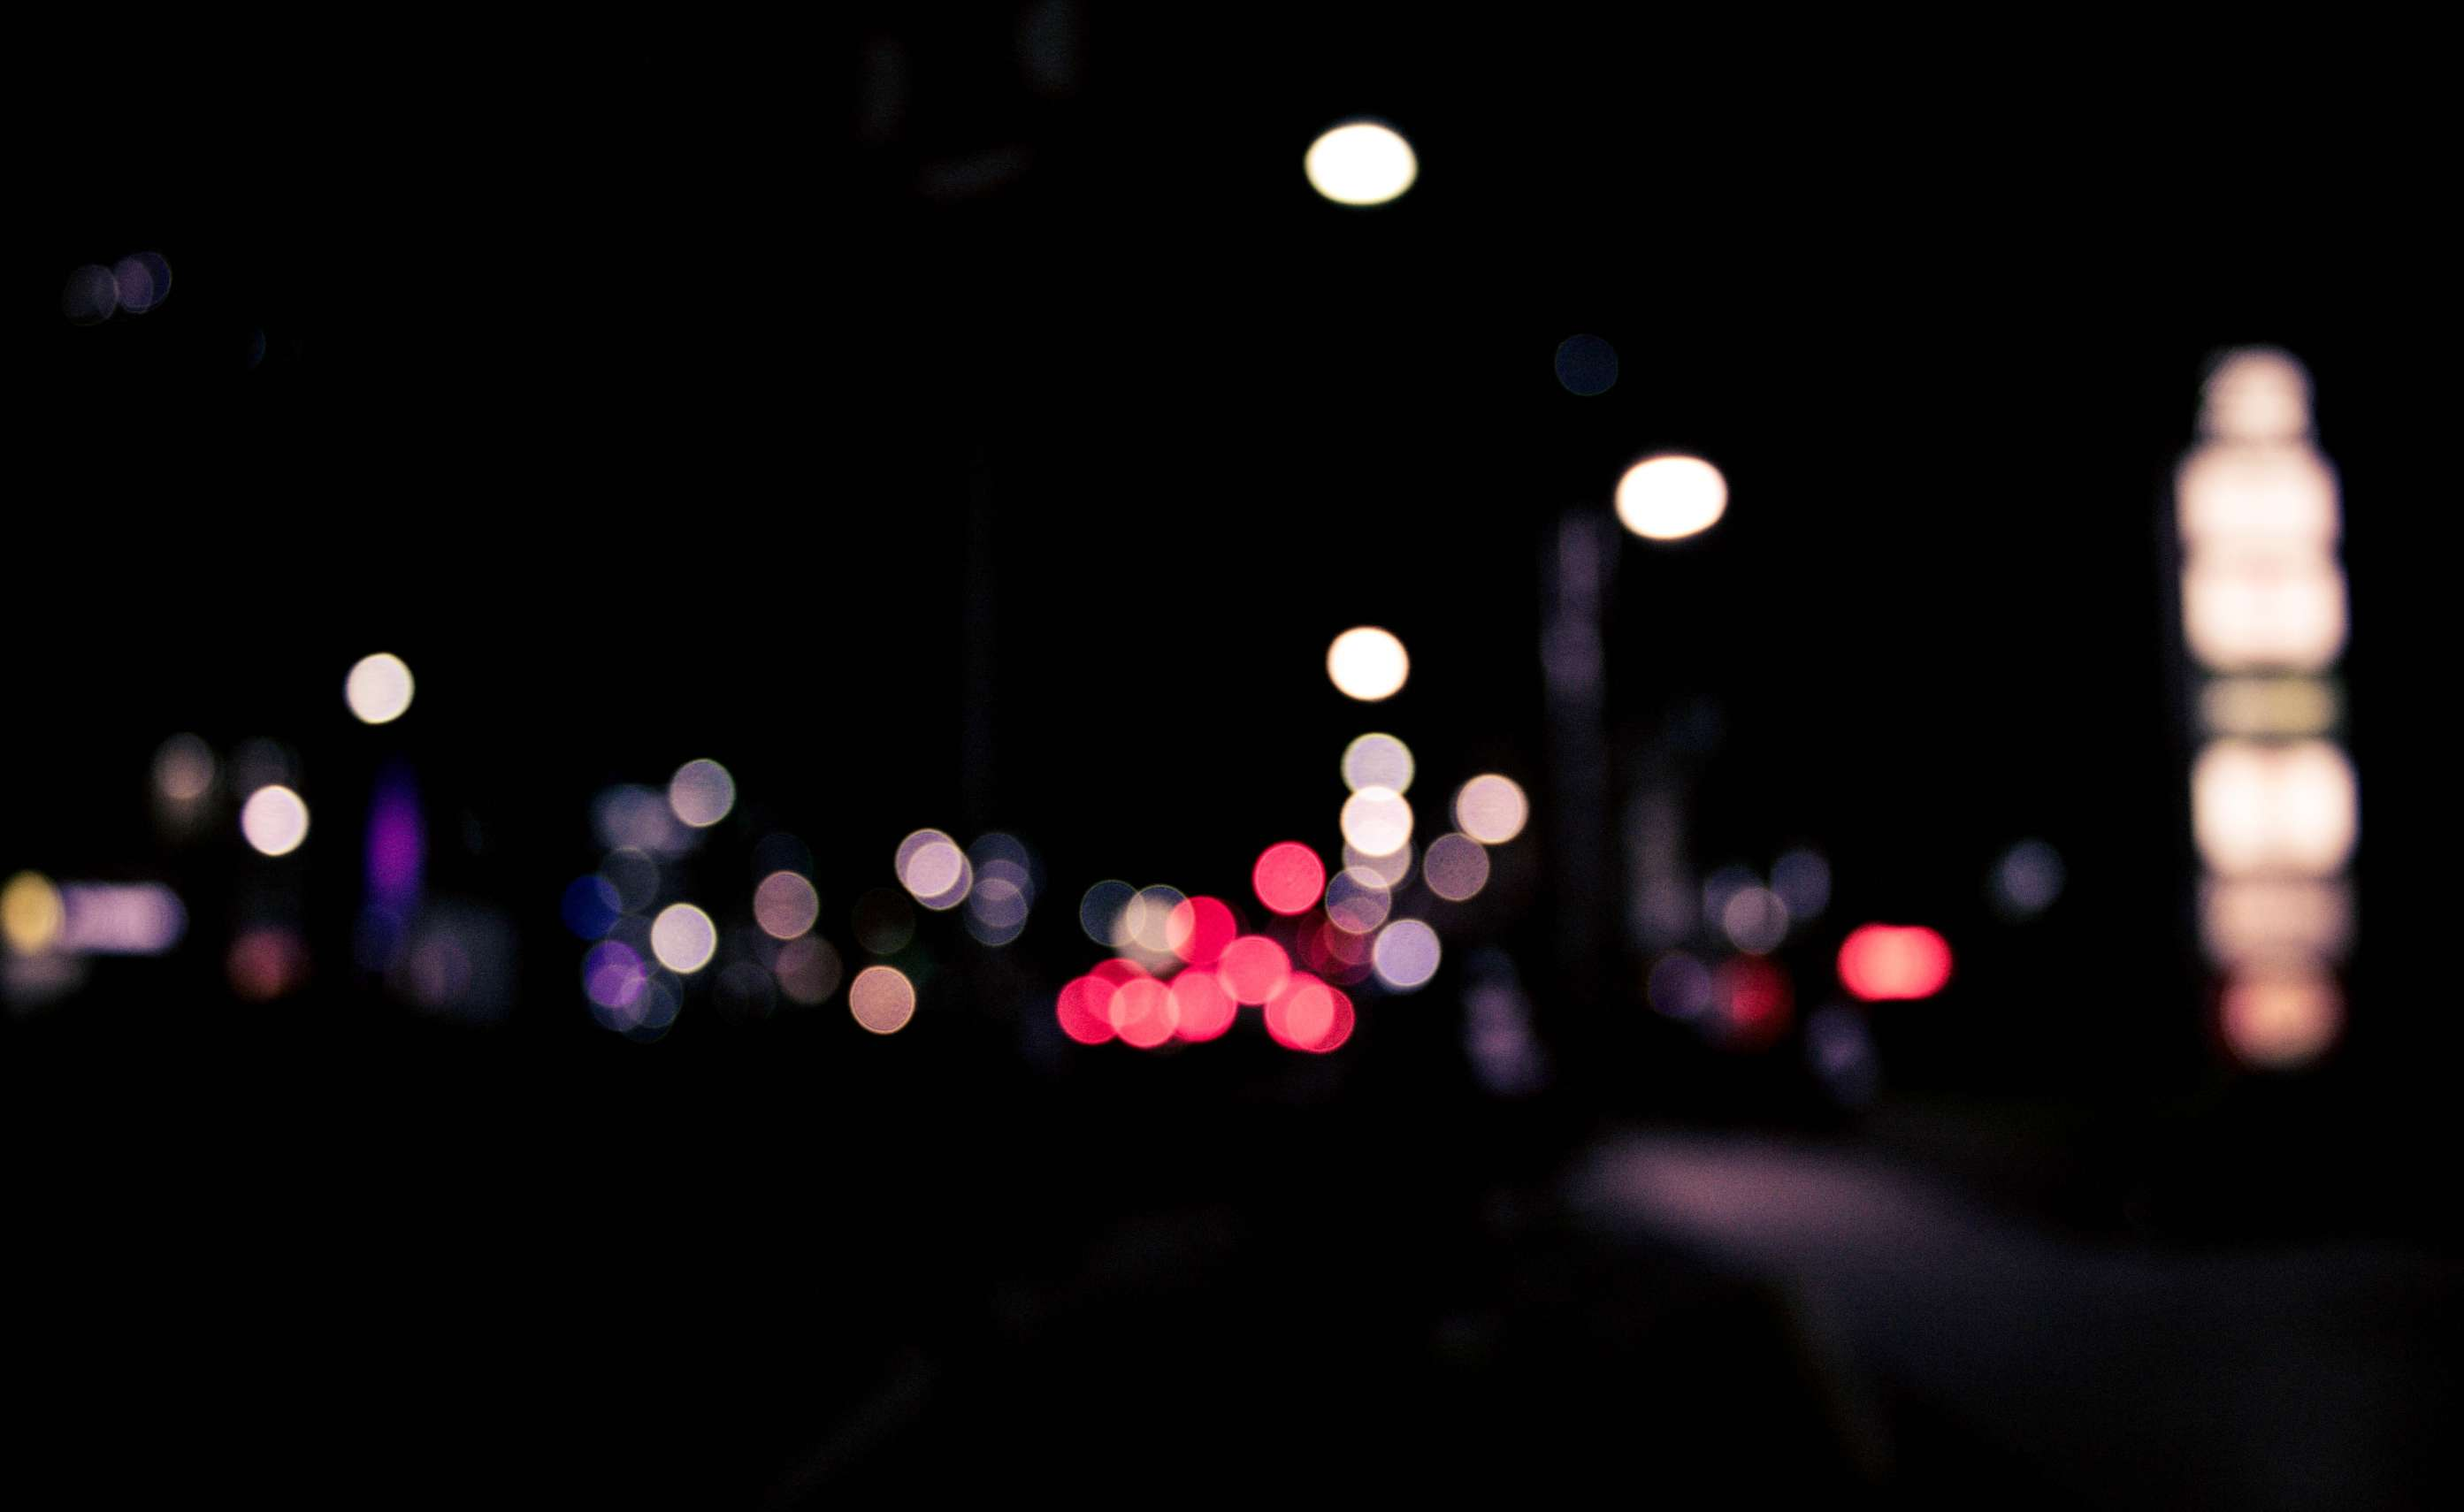 blur-bokeh-dark-376533Reckless Driving in Wisconsin